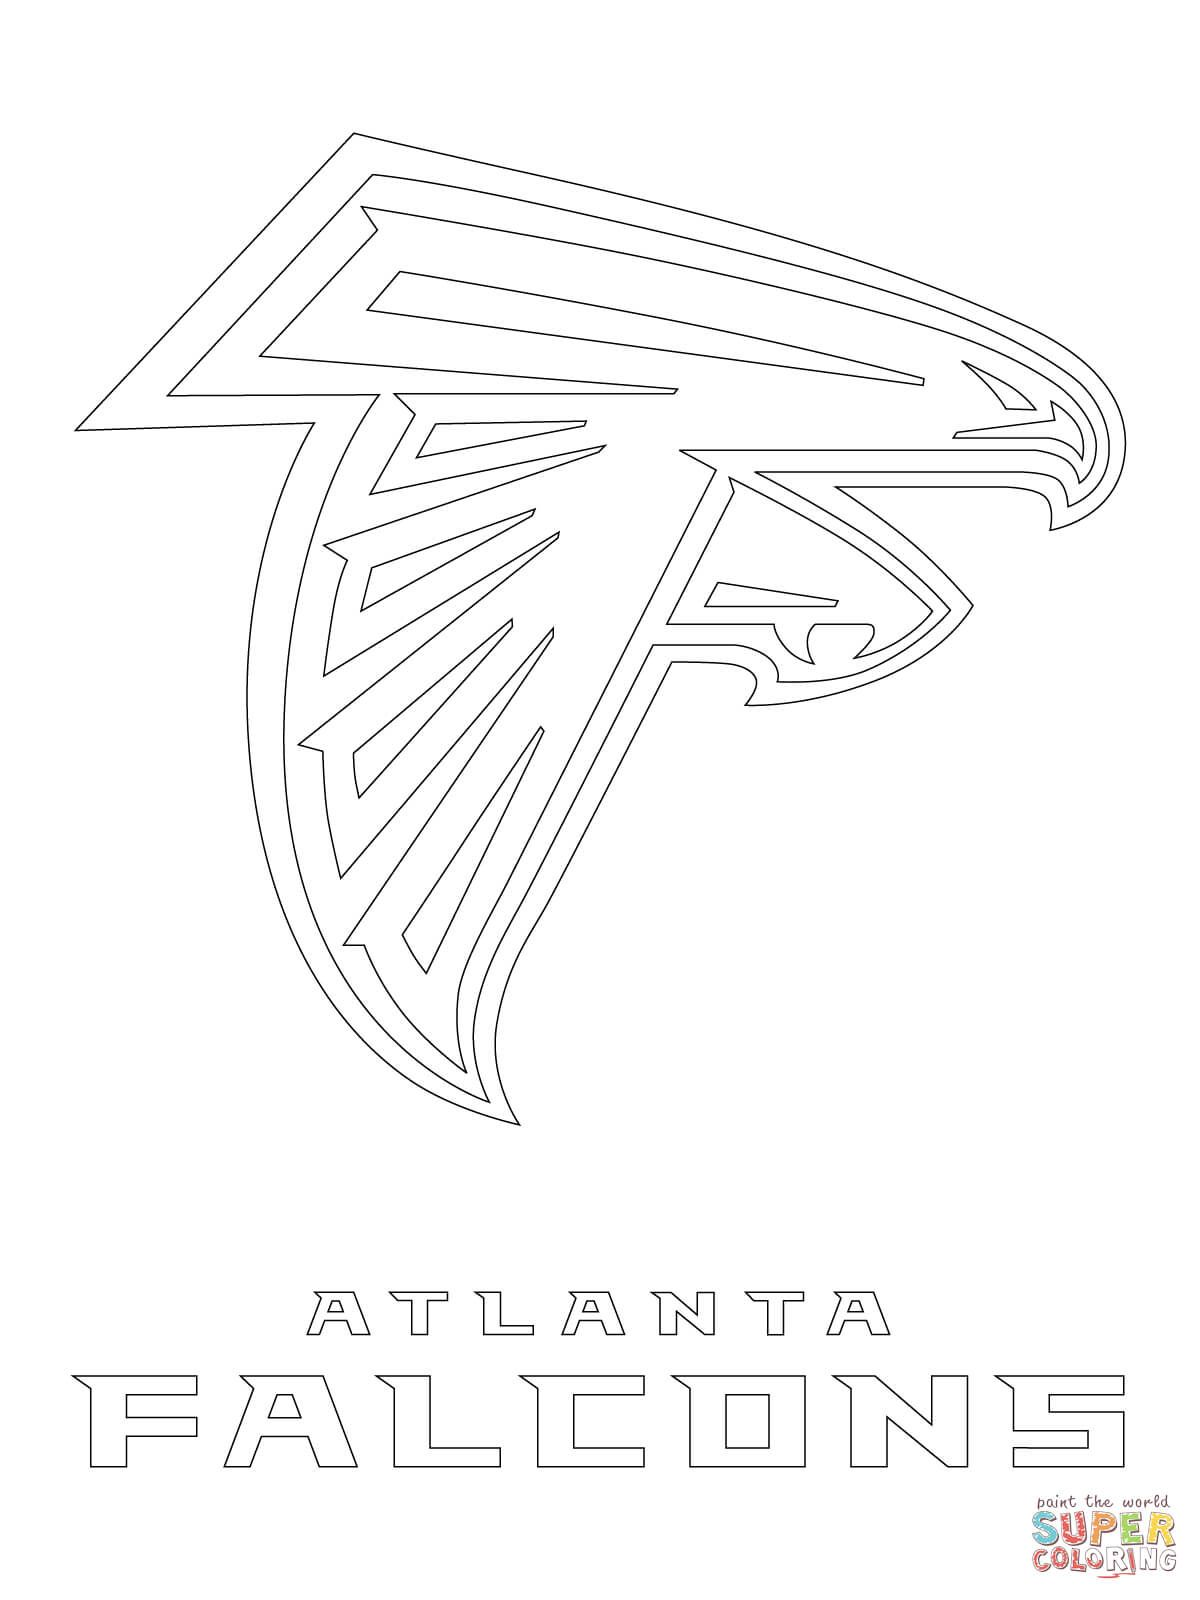 Atlanta falcons logo coloring page from nfl category select from 27538 printable crafts of cartoons nature animals bible and many more